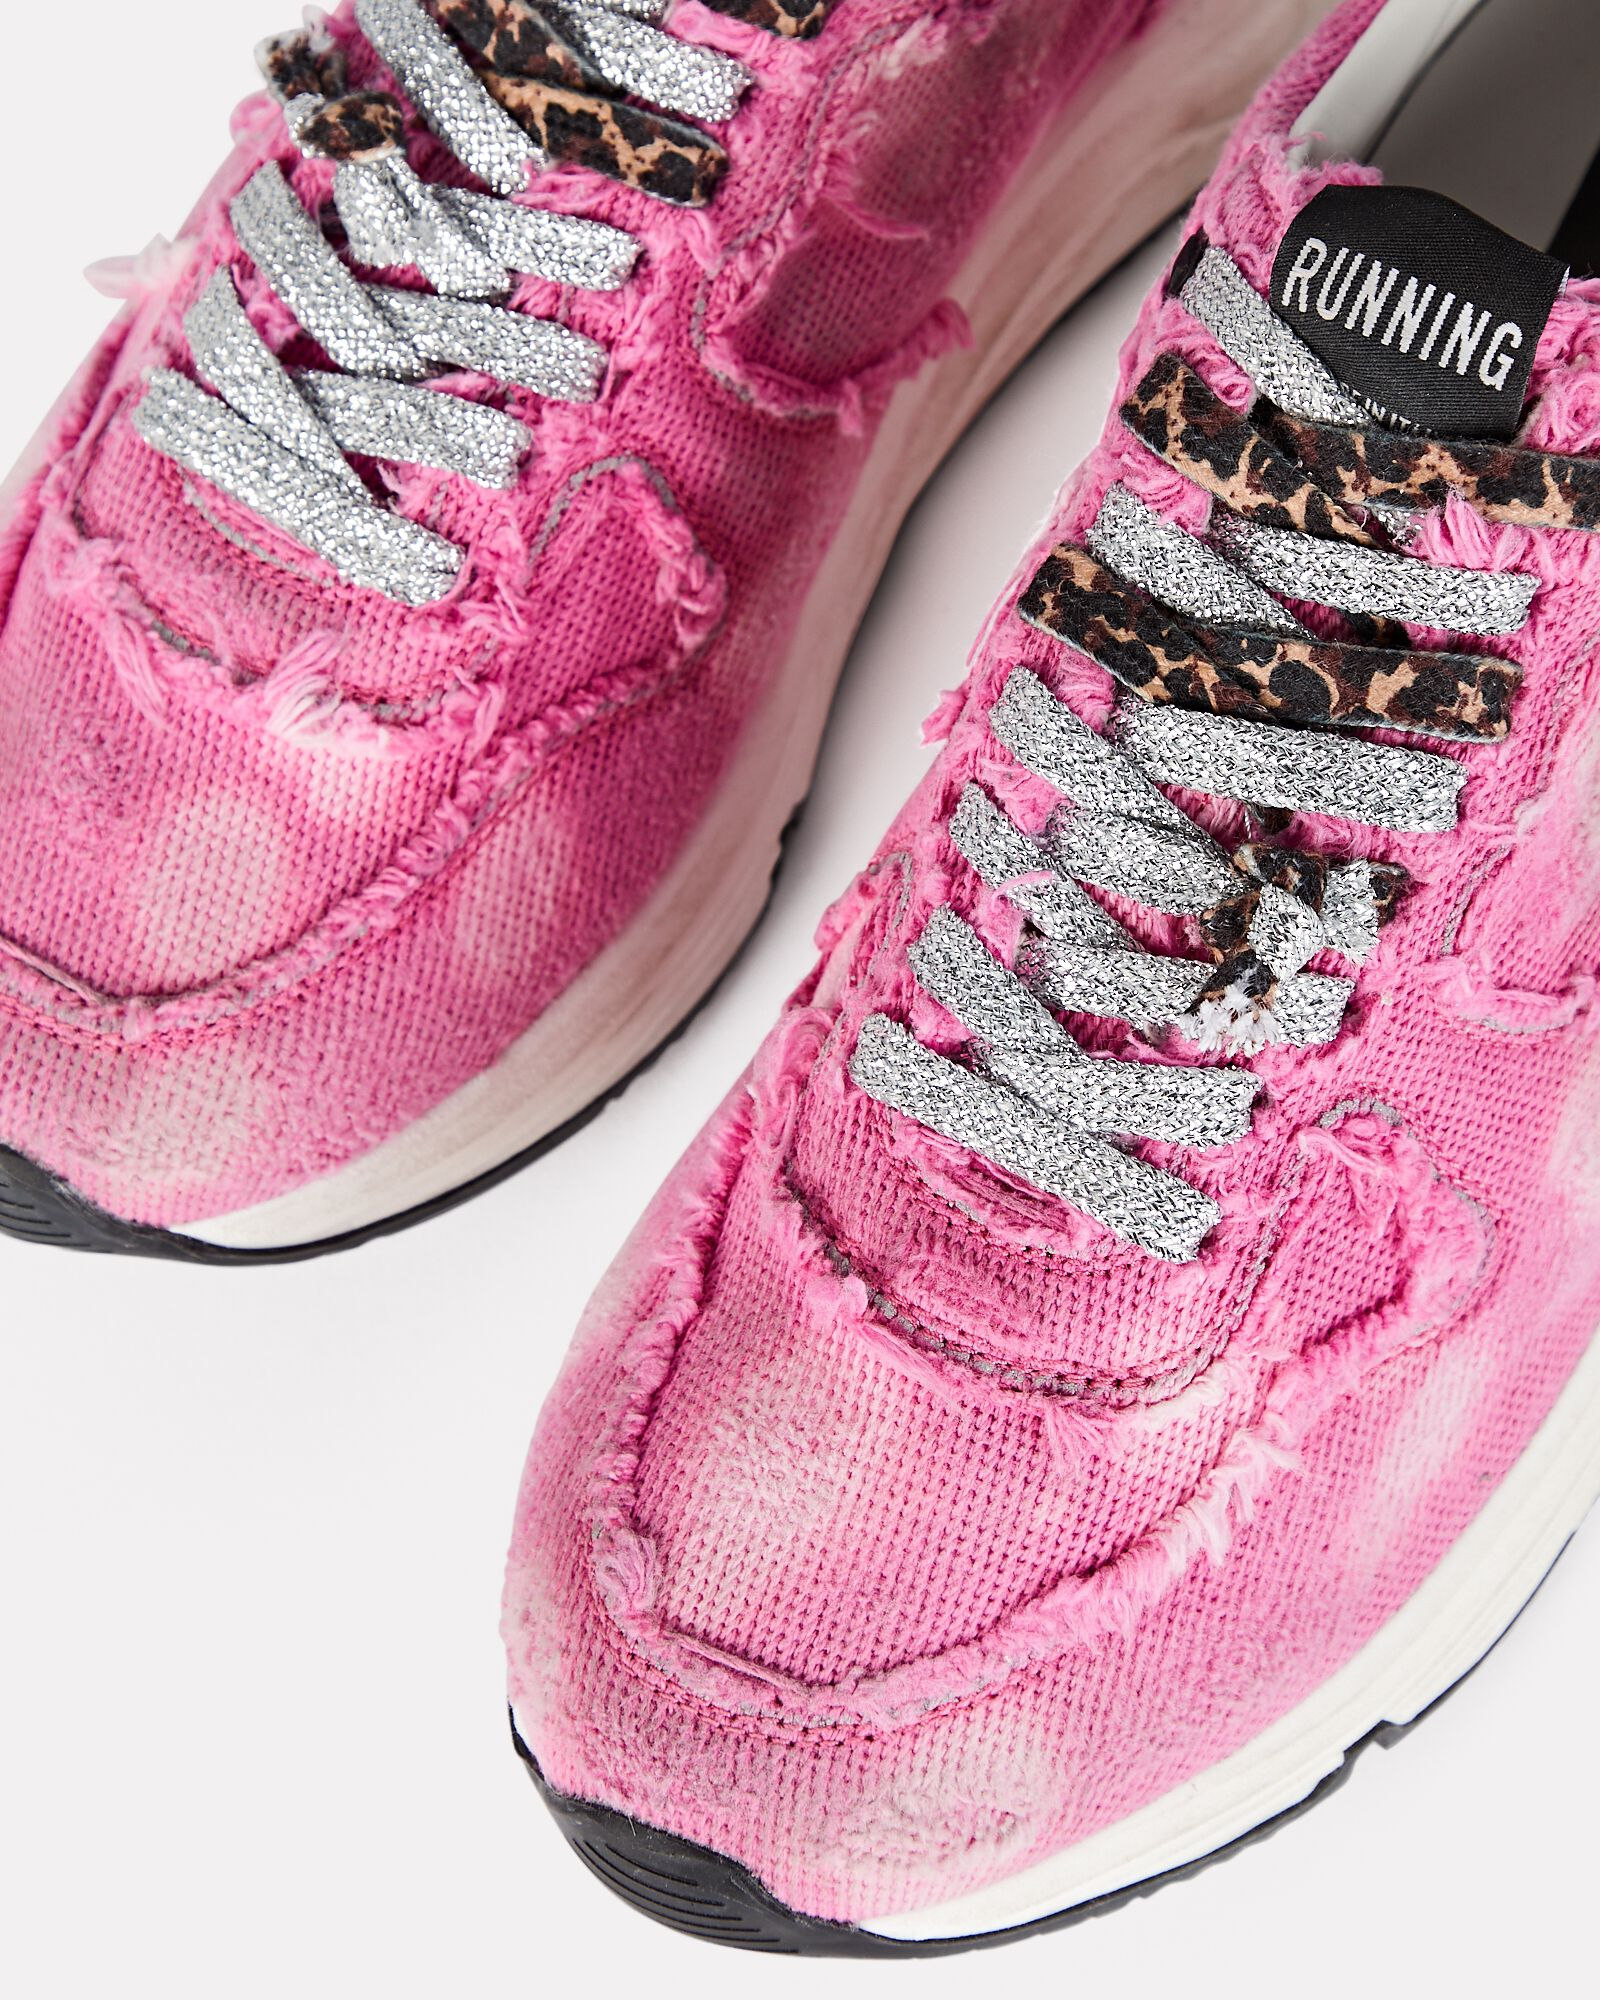 Running Sole Canvas Sneakers, PINK, hi-res